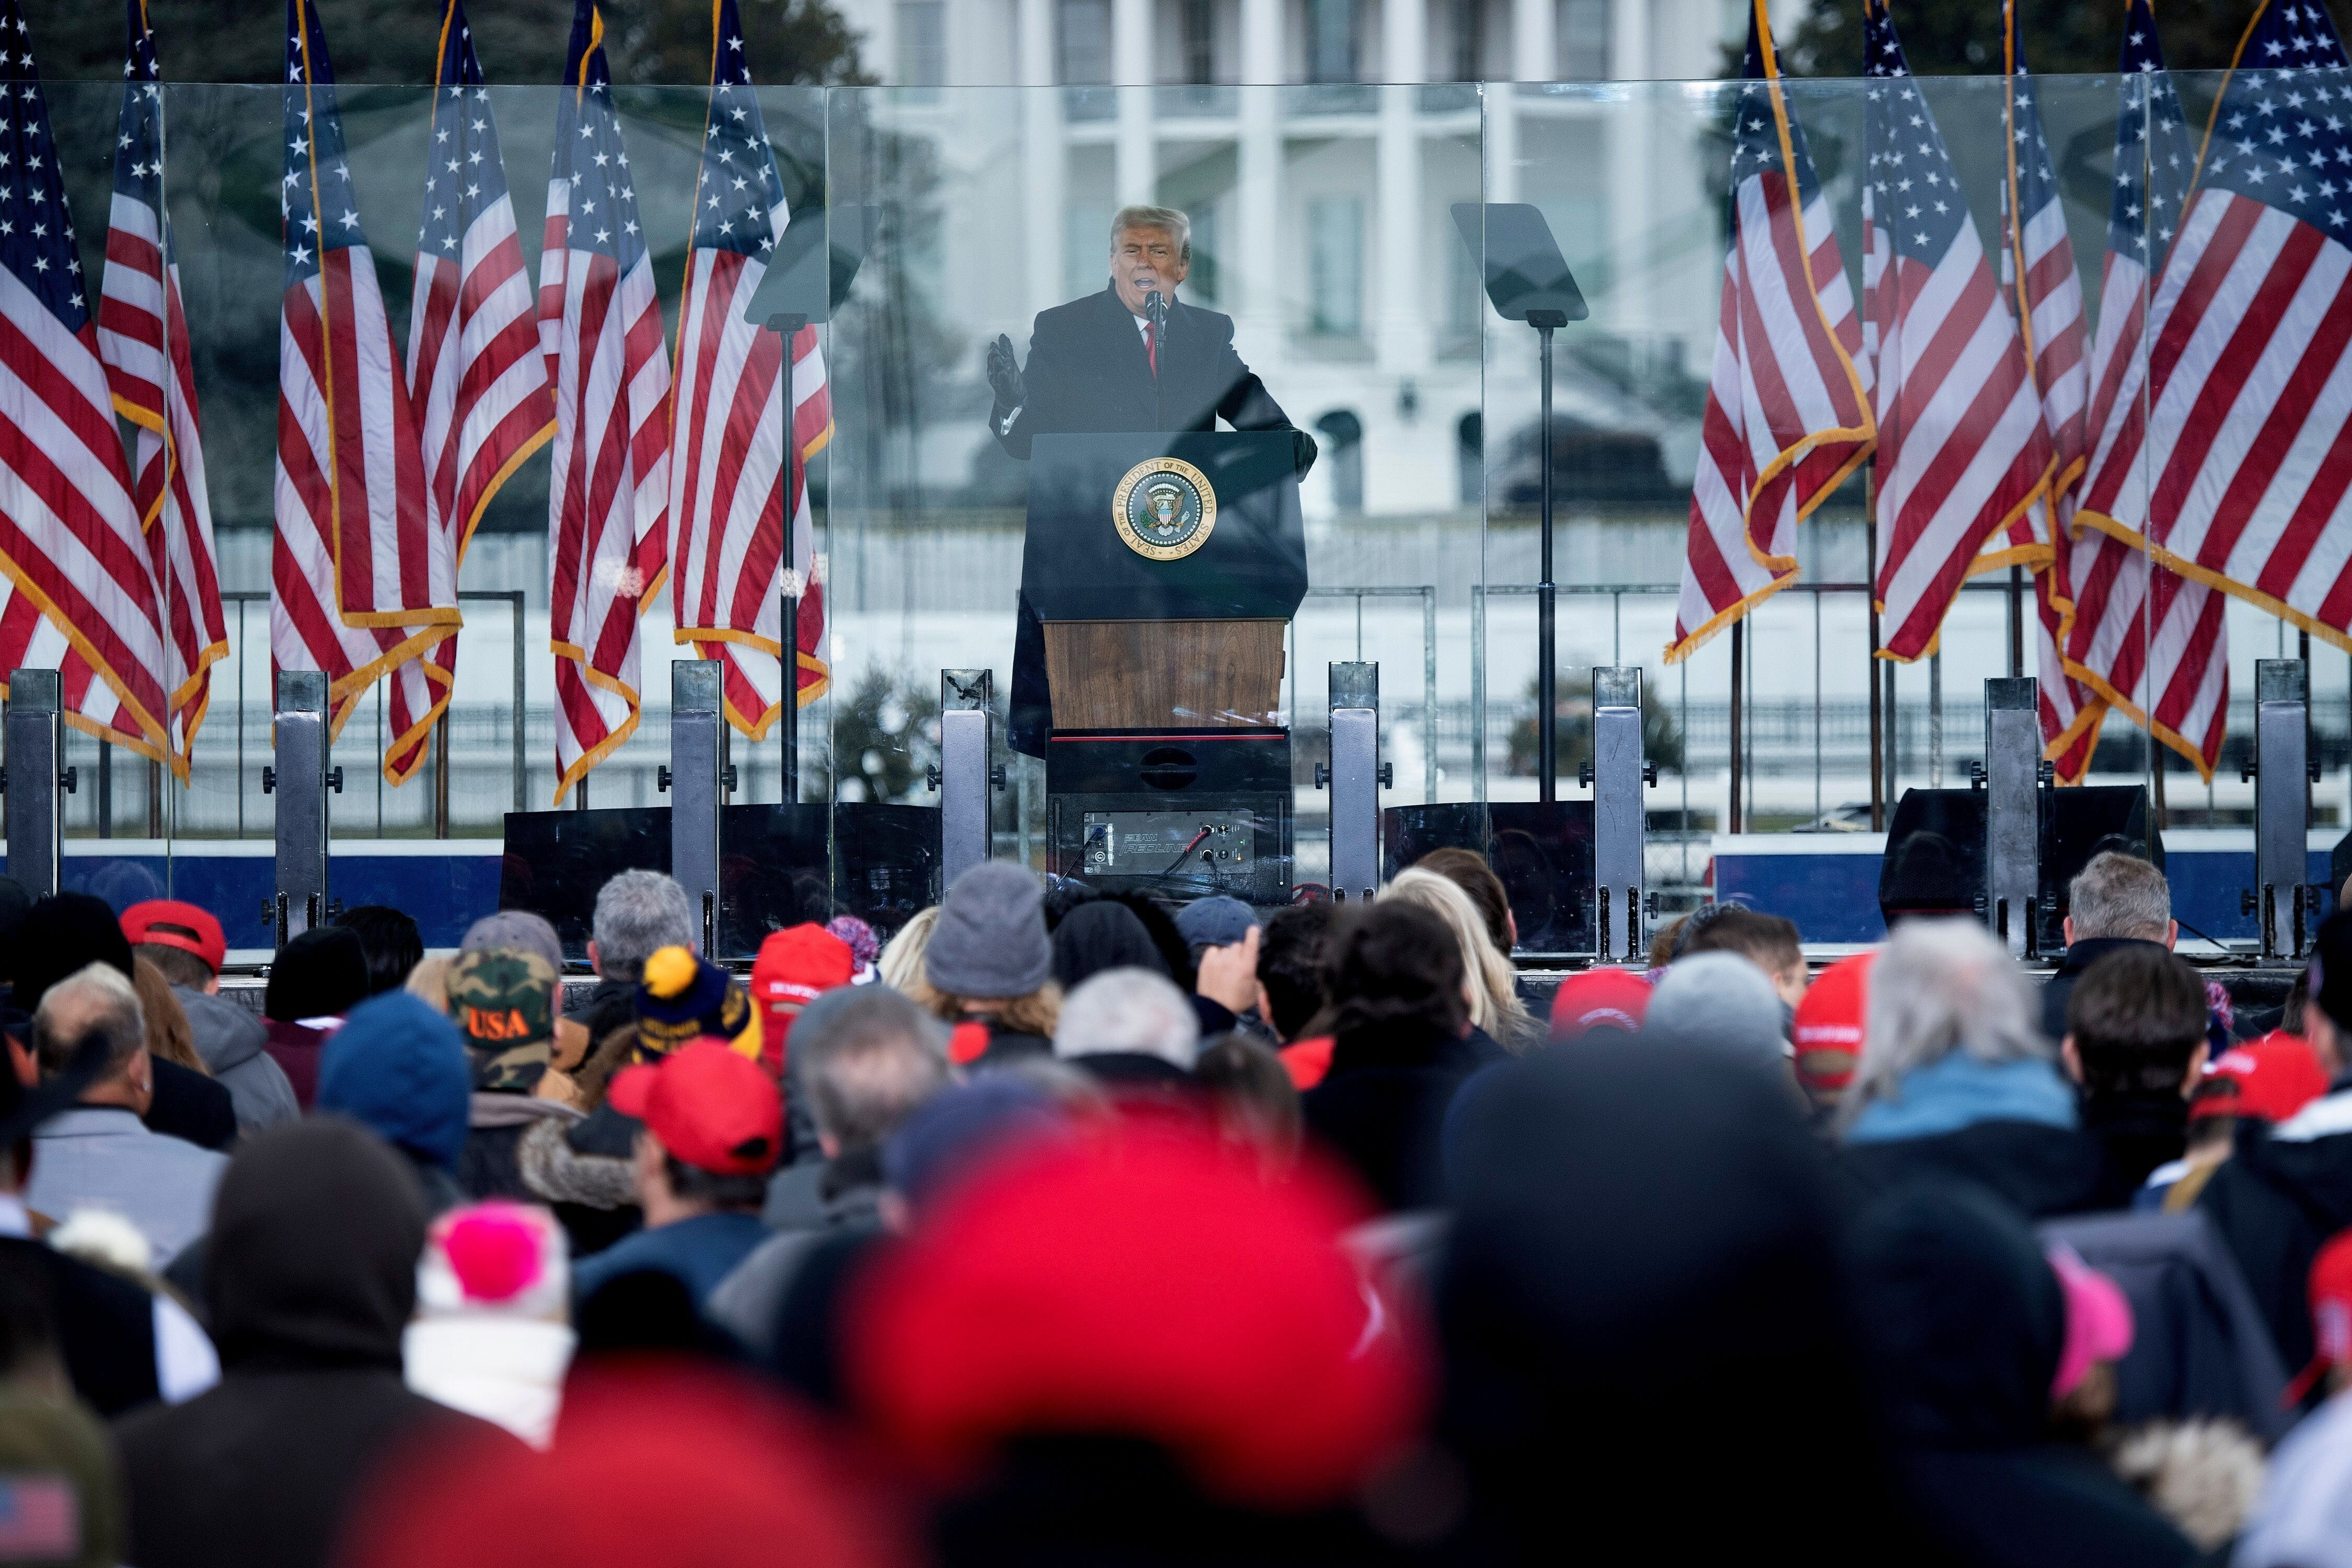 President Donald Trump speaks to supporters at a rally near the White House on Jan. 6, shortly before some stormed the Capito